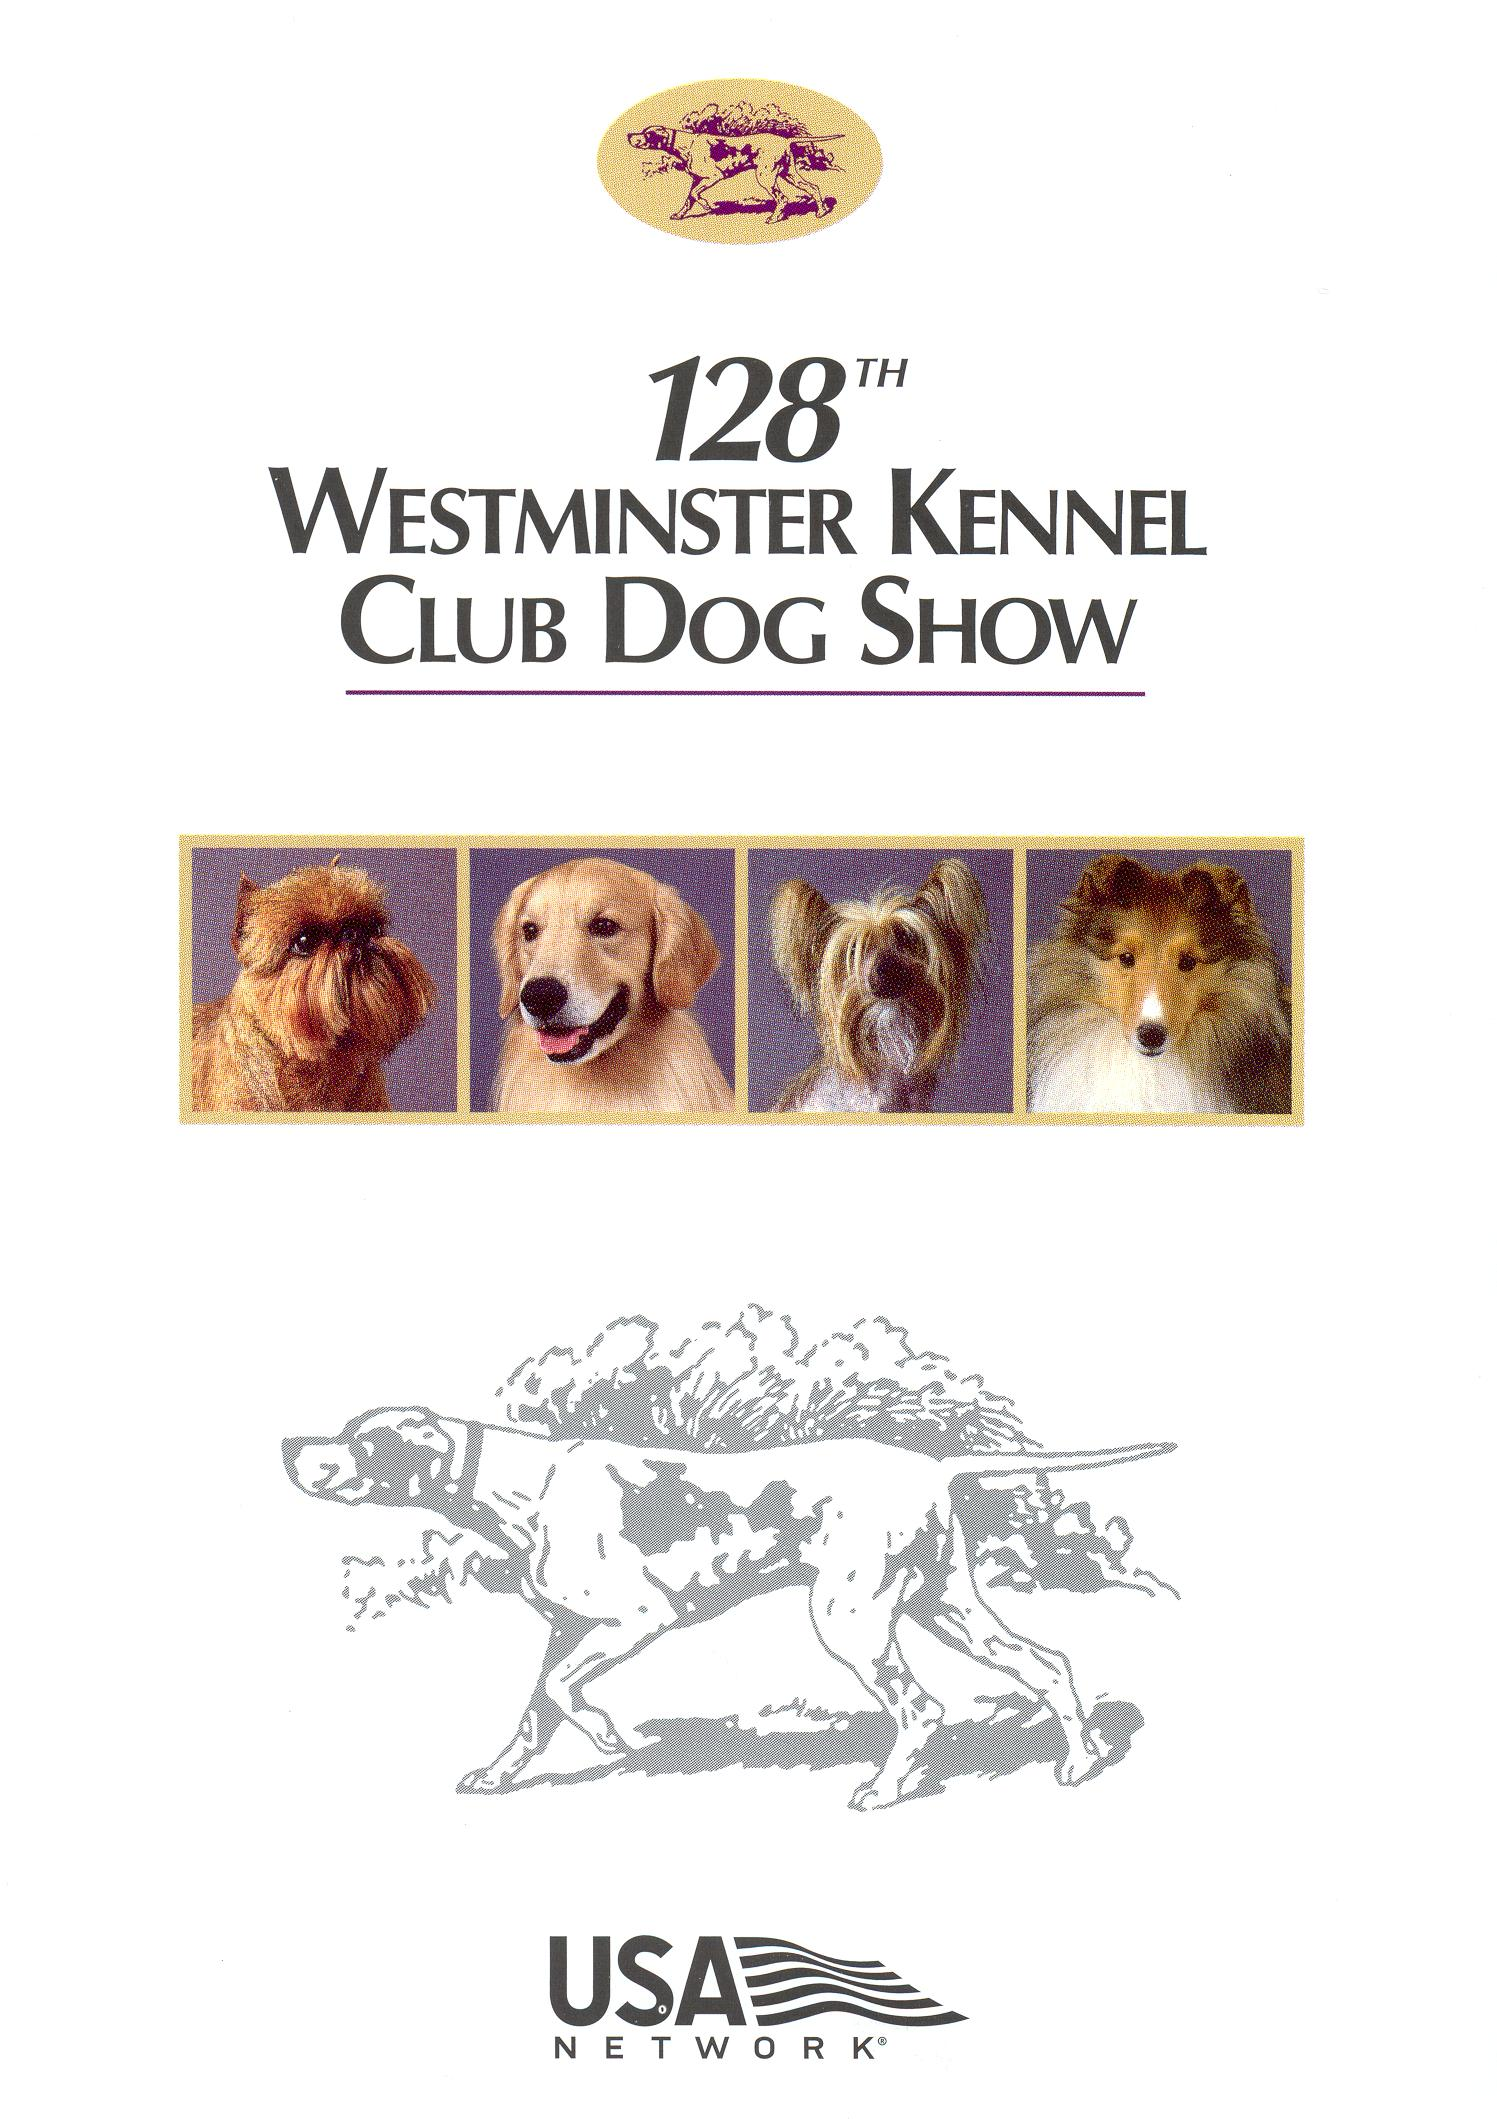 128th Westminster Kennel Club Dog Show